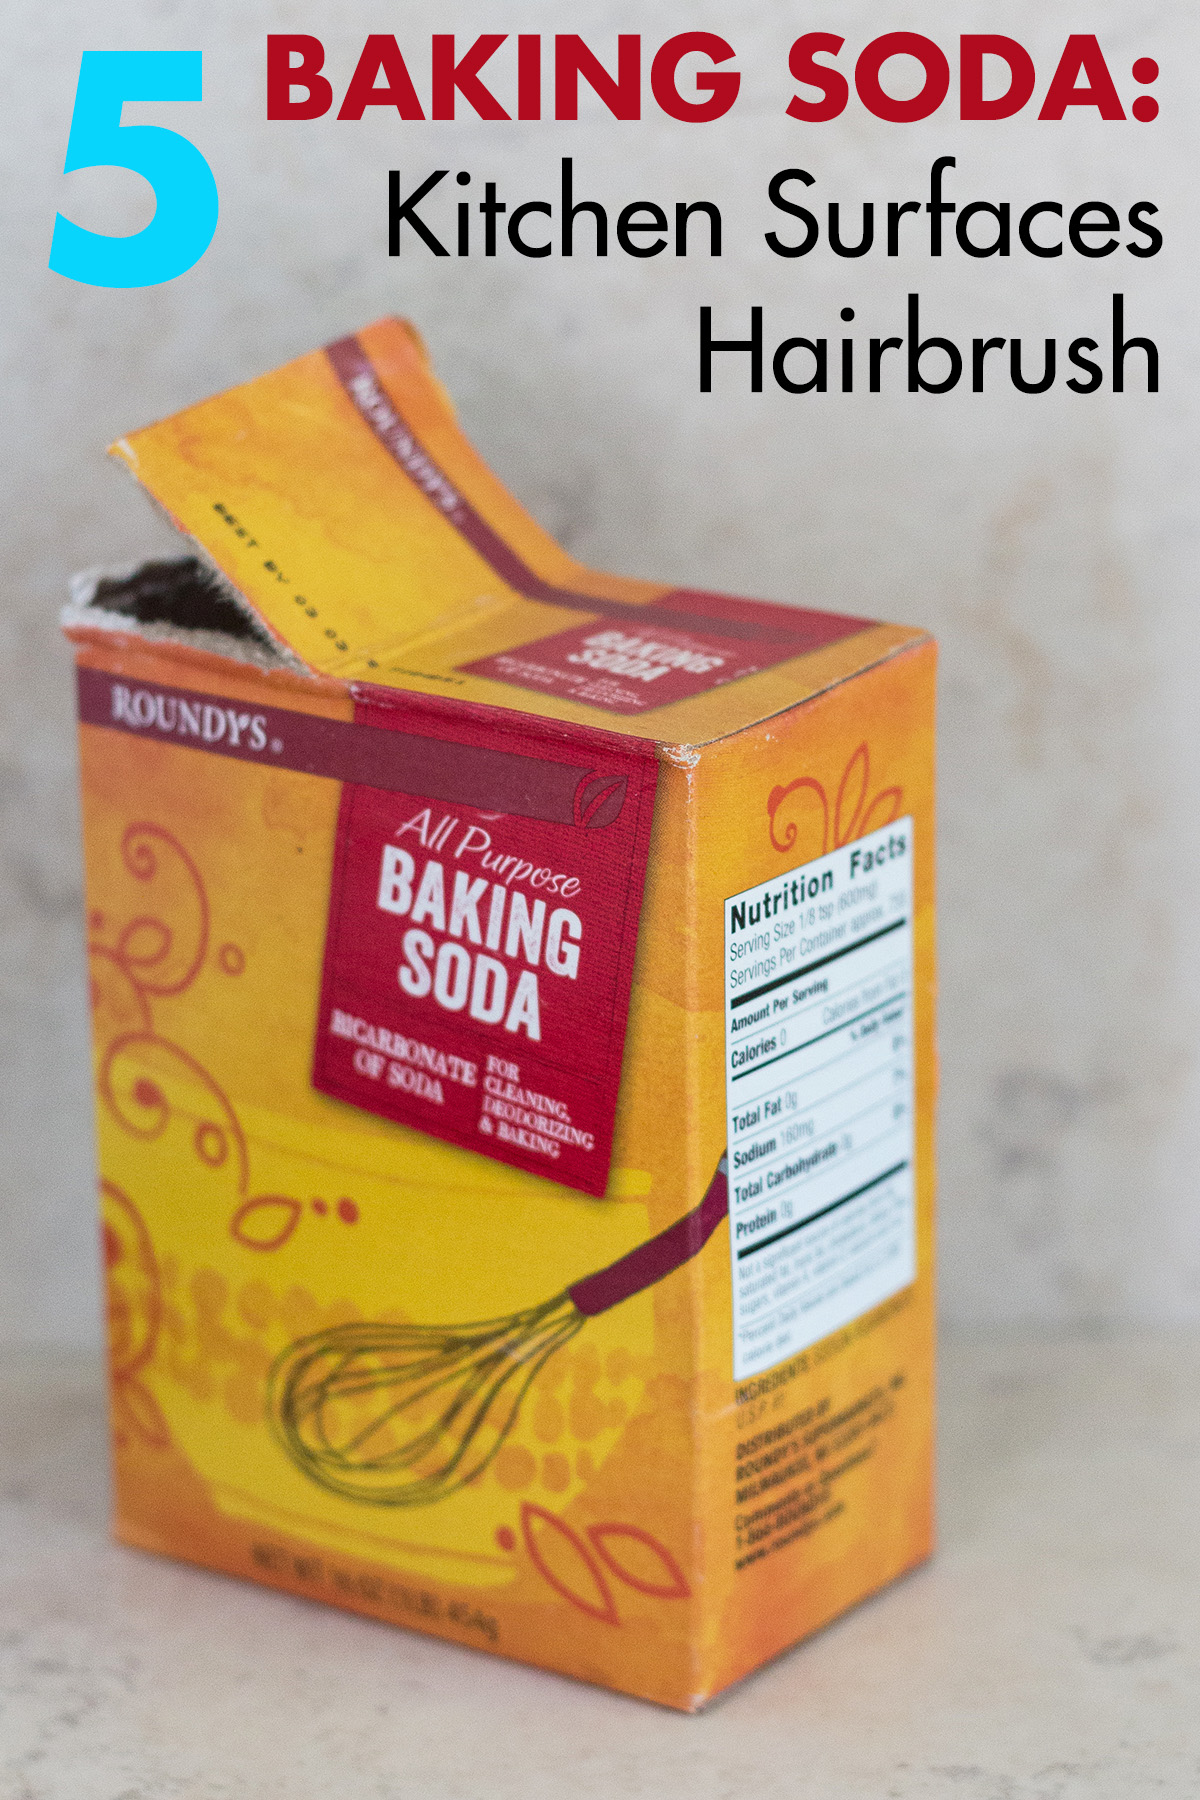 Baking Soda to Clean Kitchen Surfaces and Hairbrushes